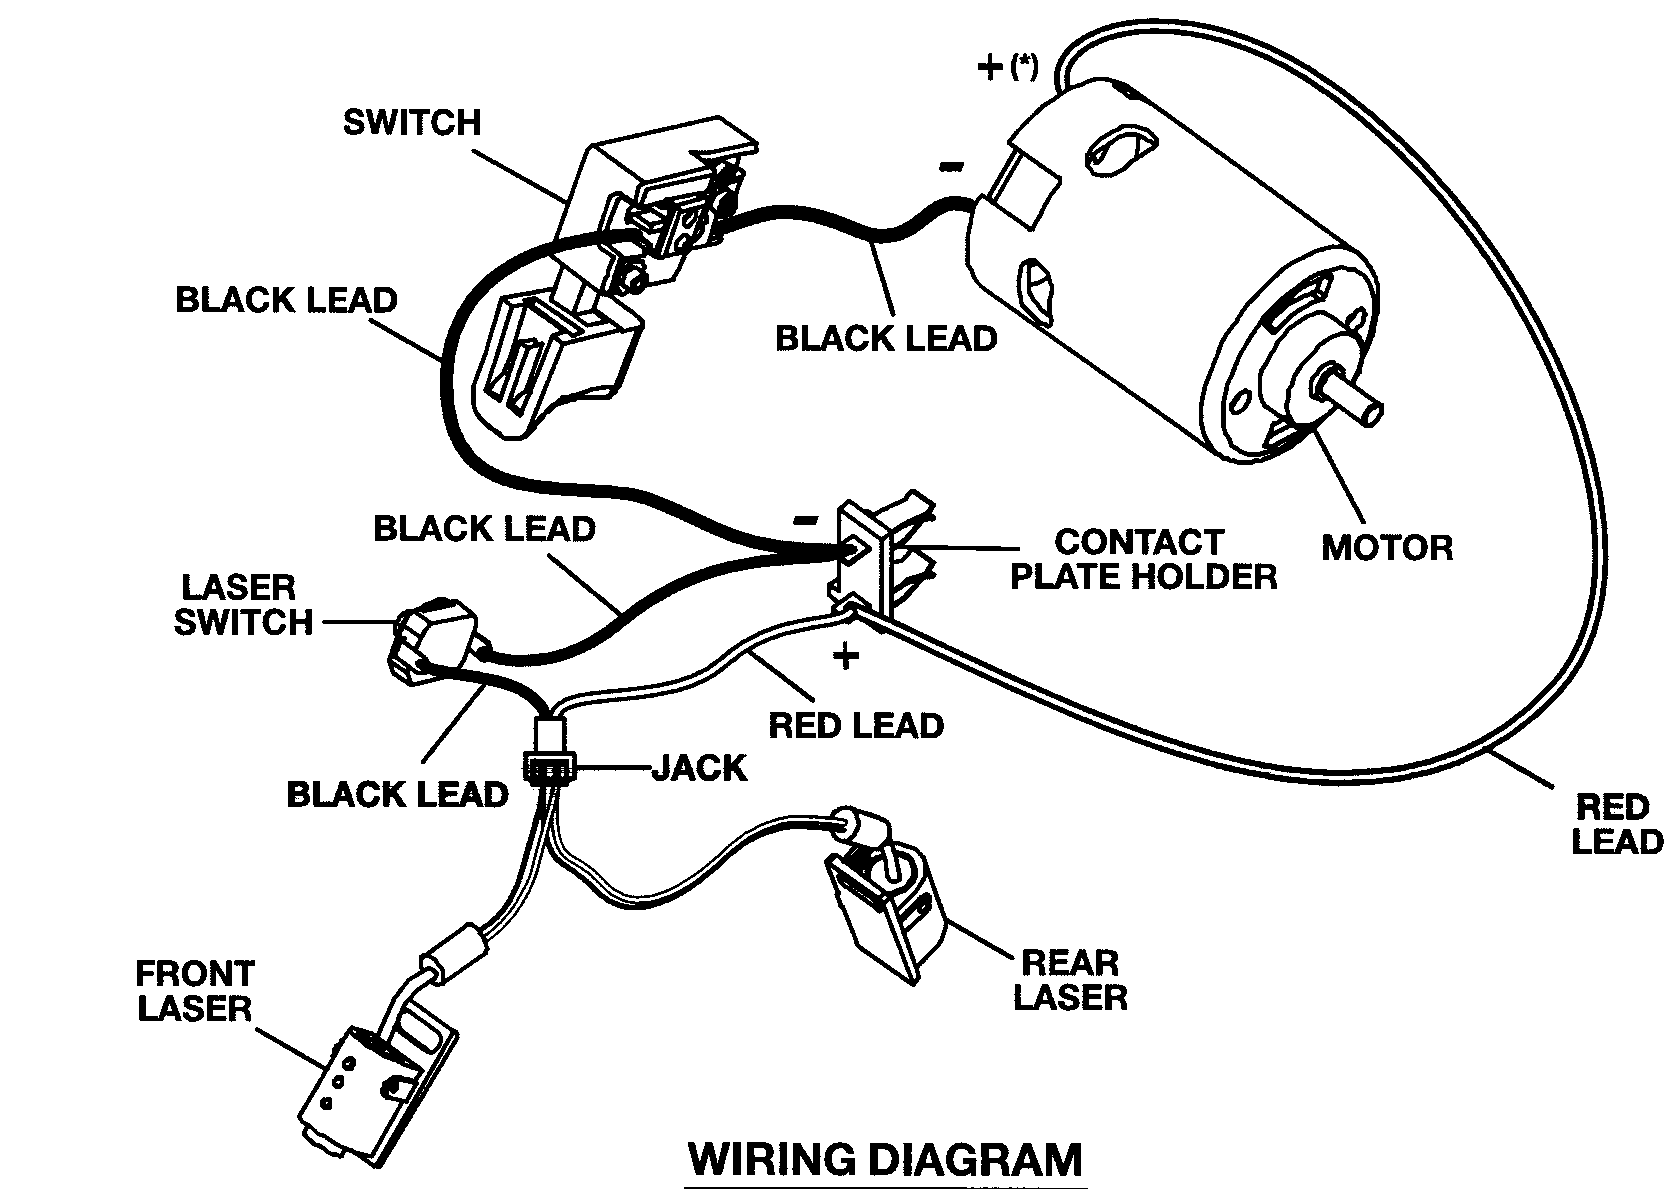 Wiring Diagram For Electric Motor For Craftsman Air